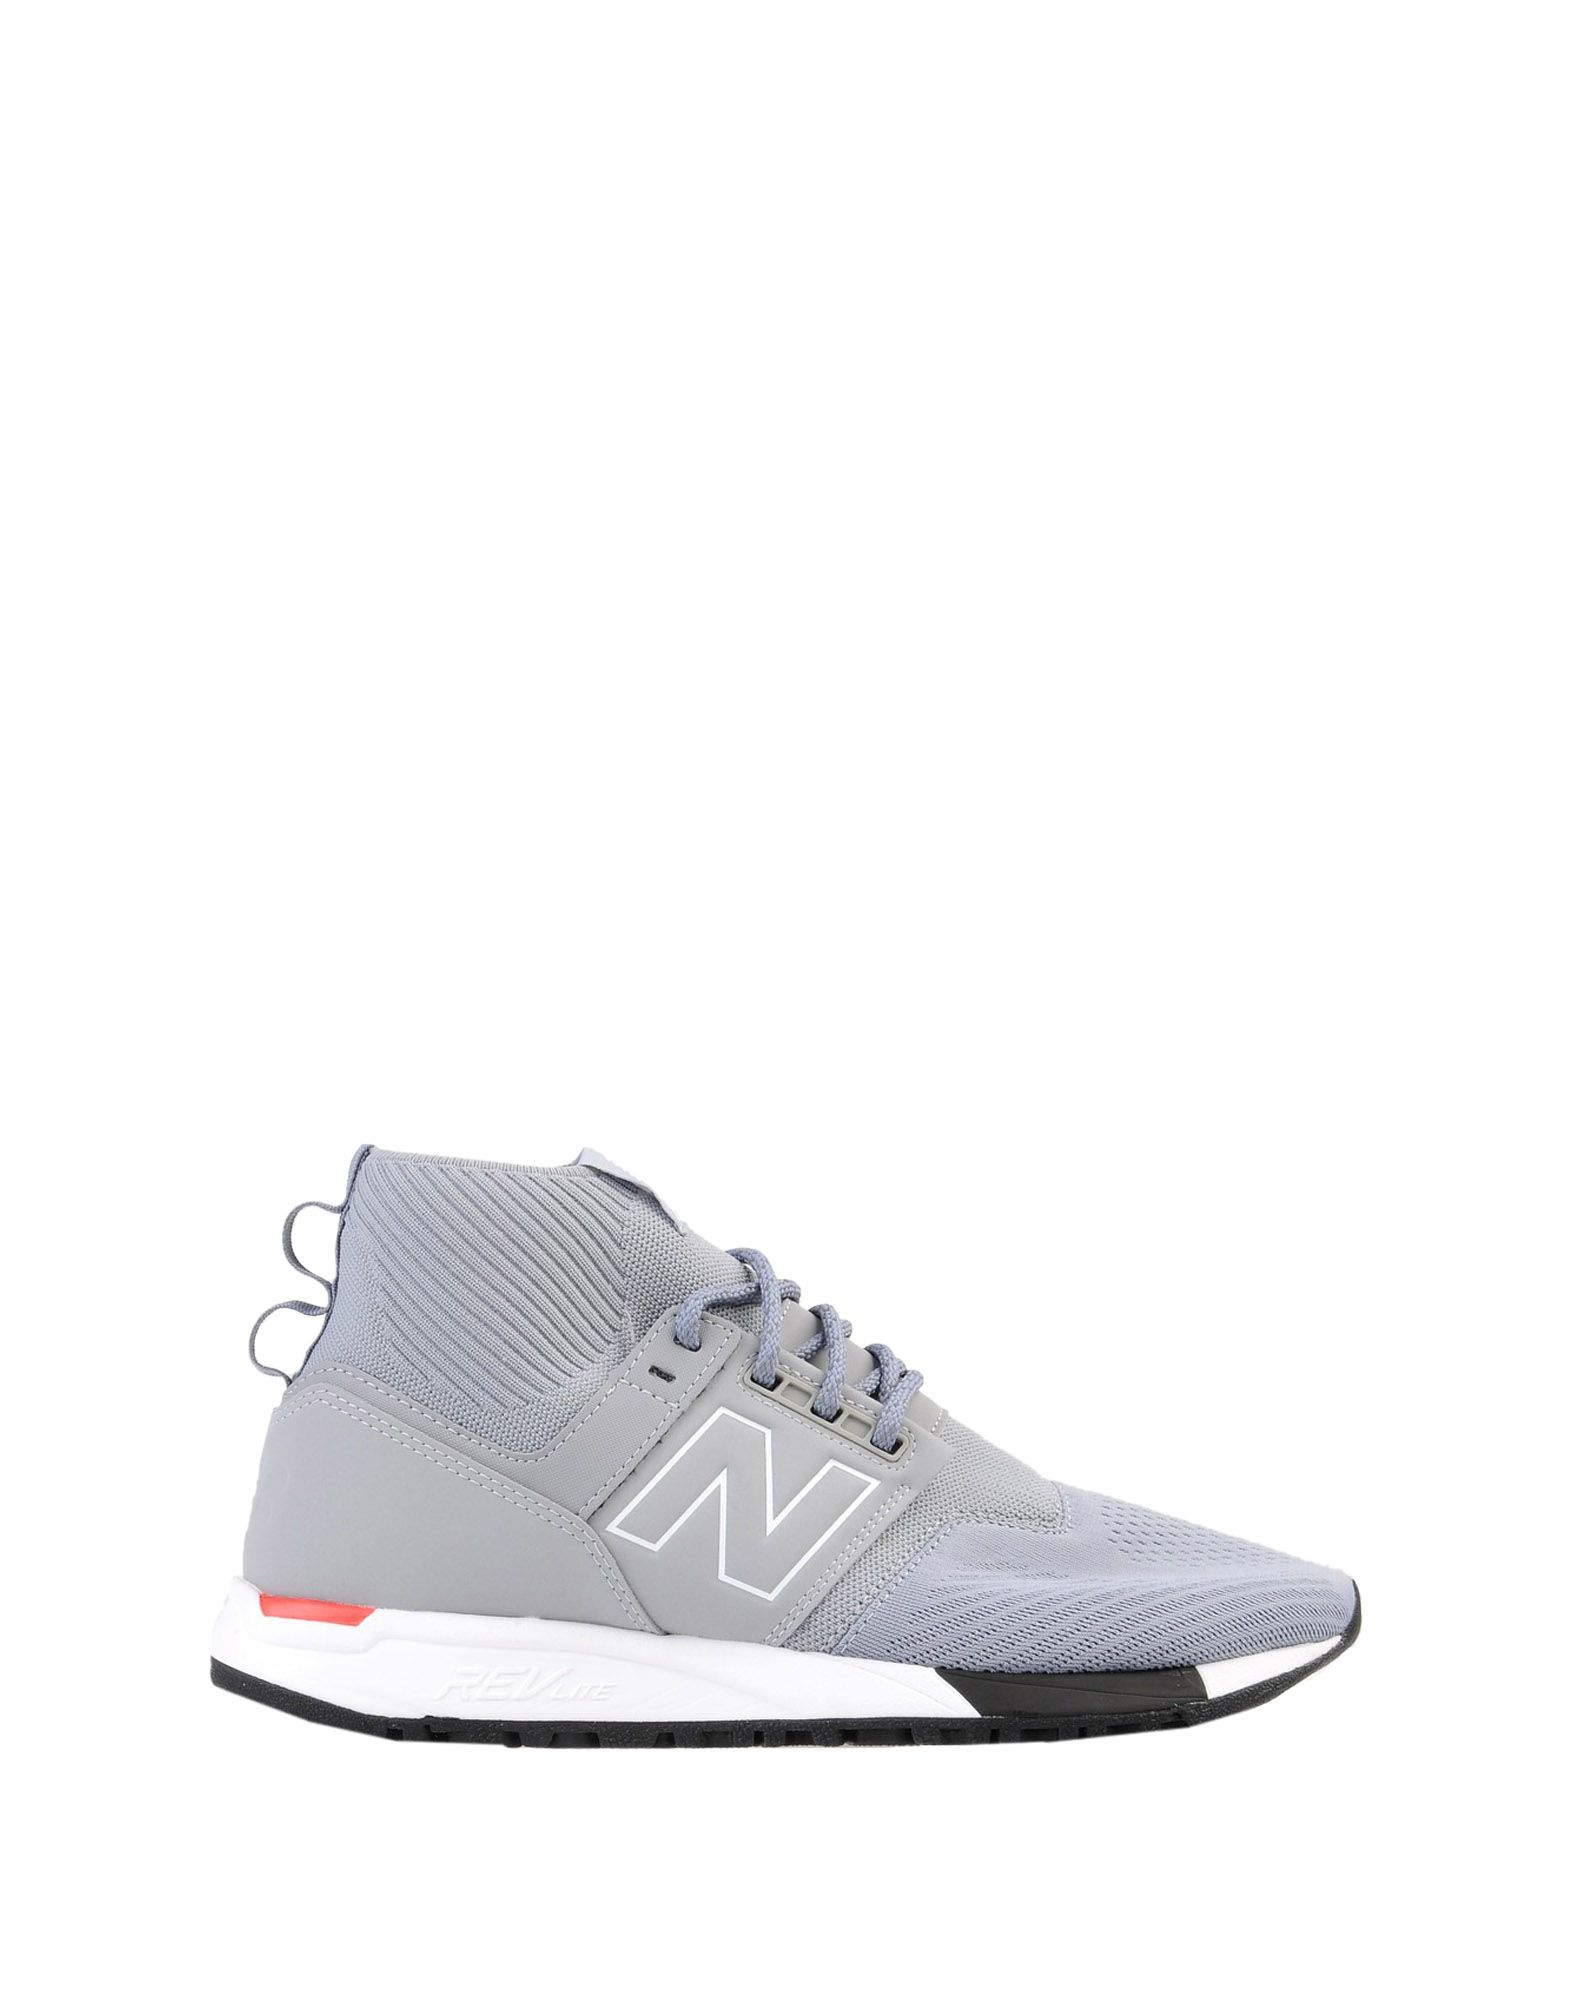 Sneakers New Balance New Balance 247 - Femme - Sneakers New Balance sur